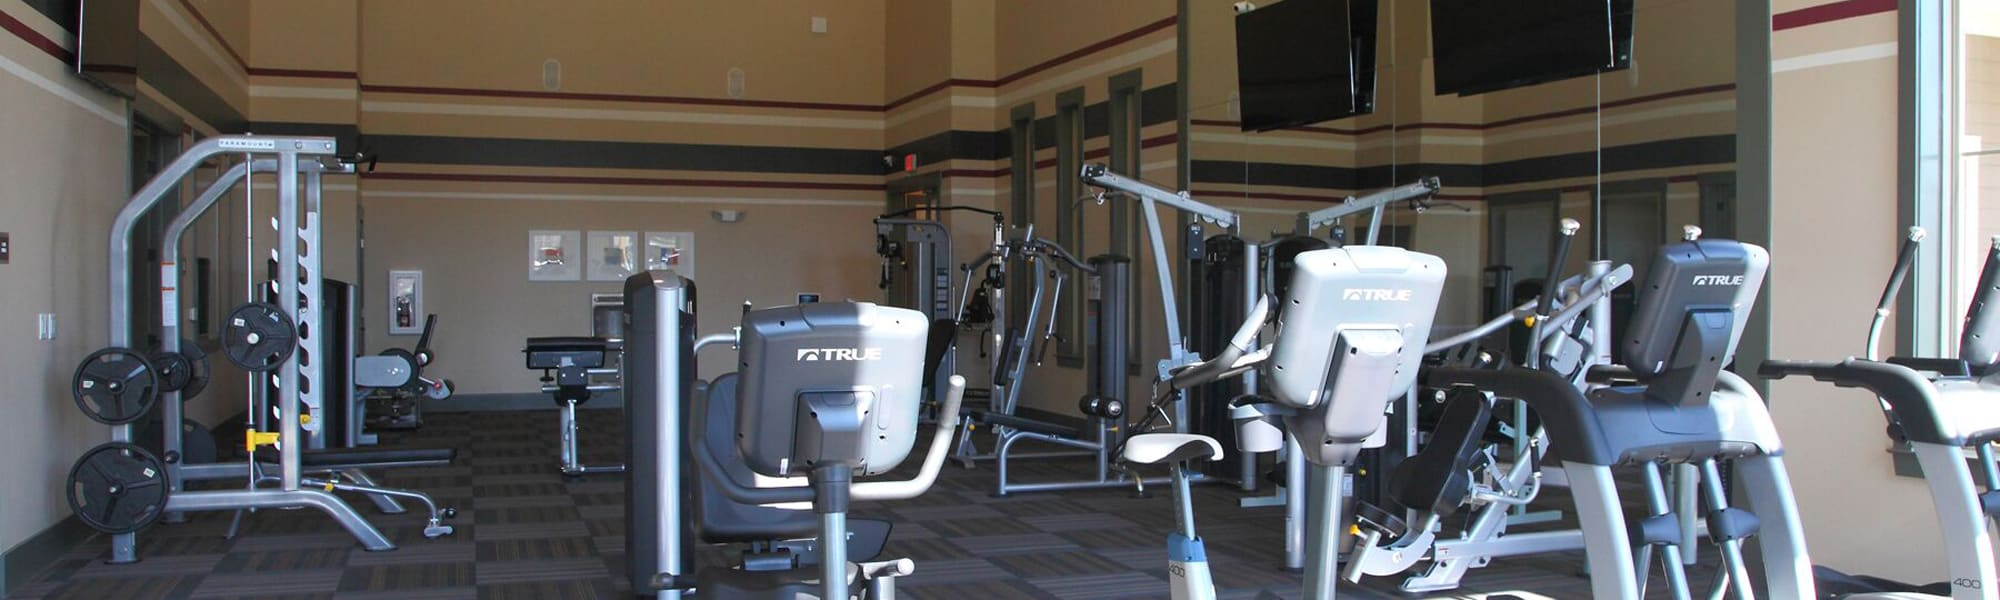 Fitness Center and other luxury amenities at our apartments in Fredericksburg, VA